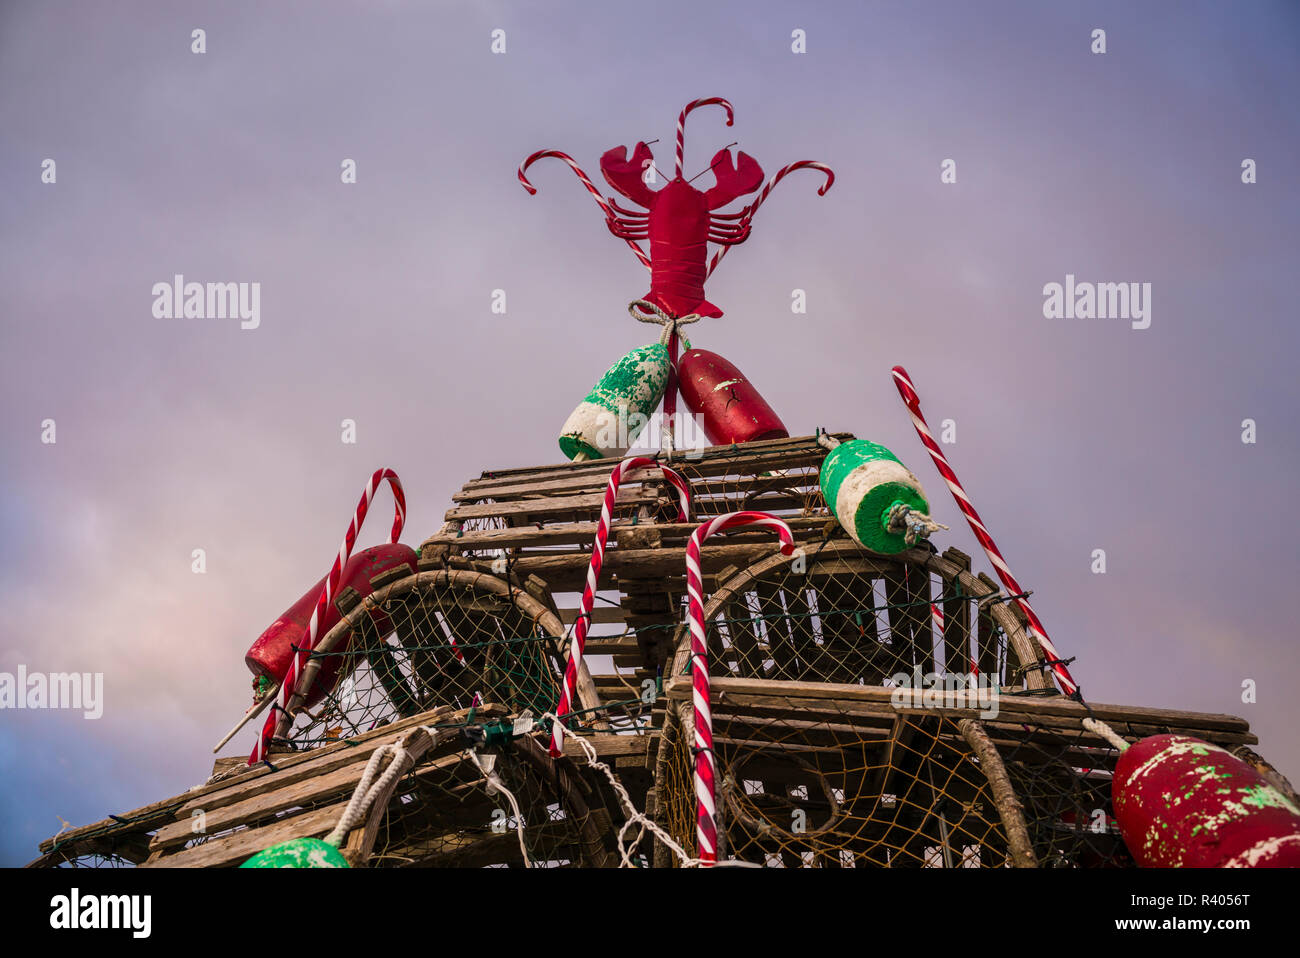 Christmas tree made of lobster traps with lobster photos